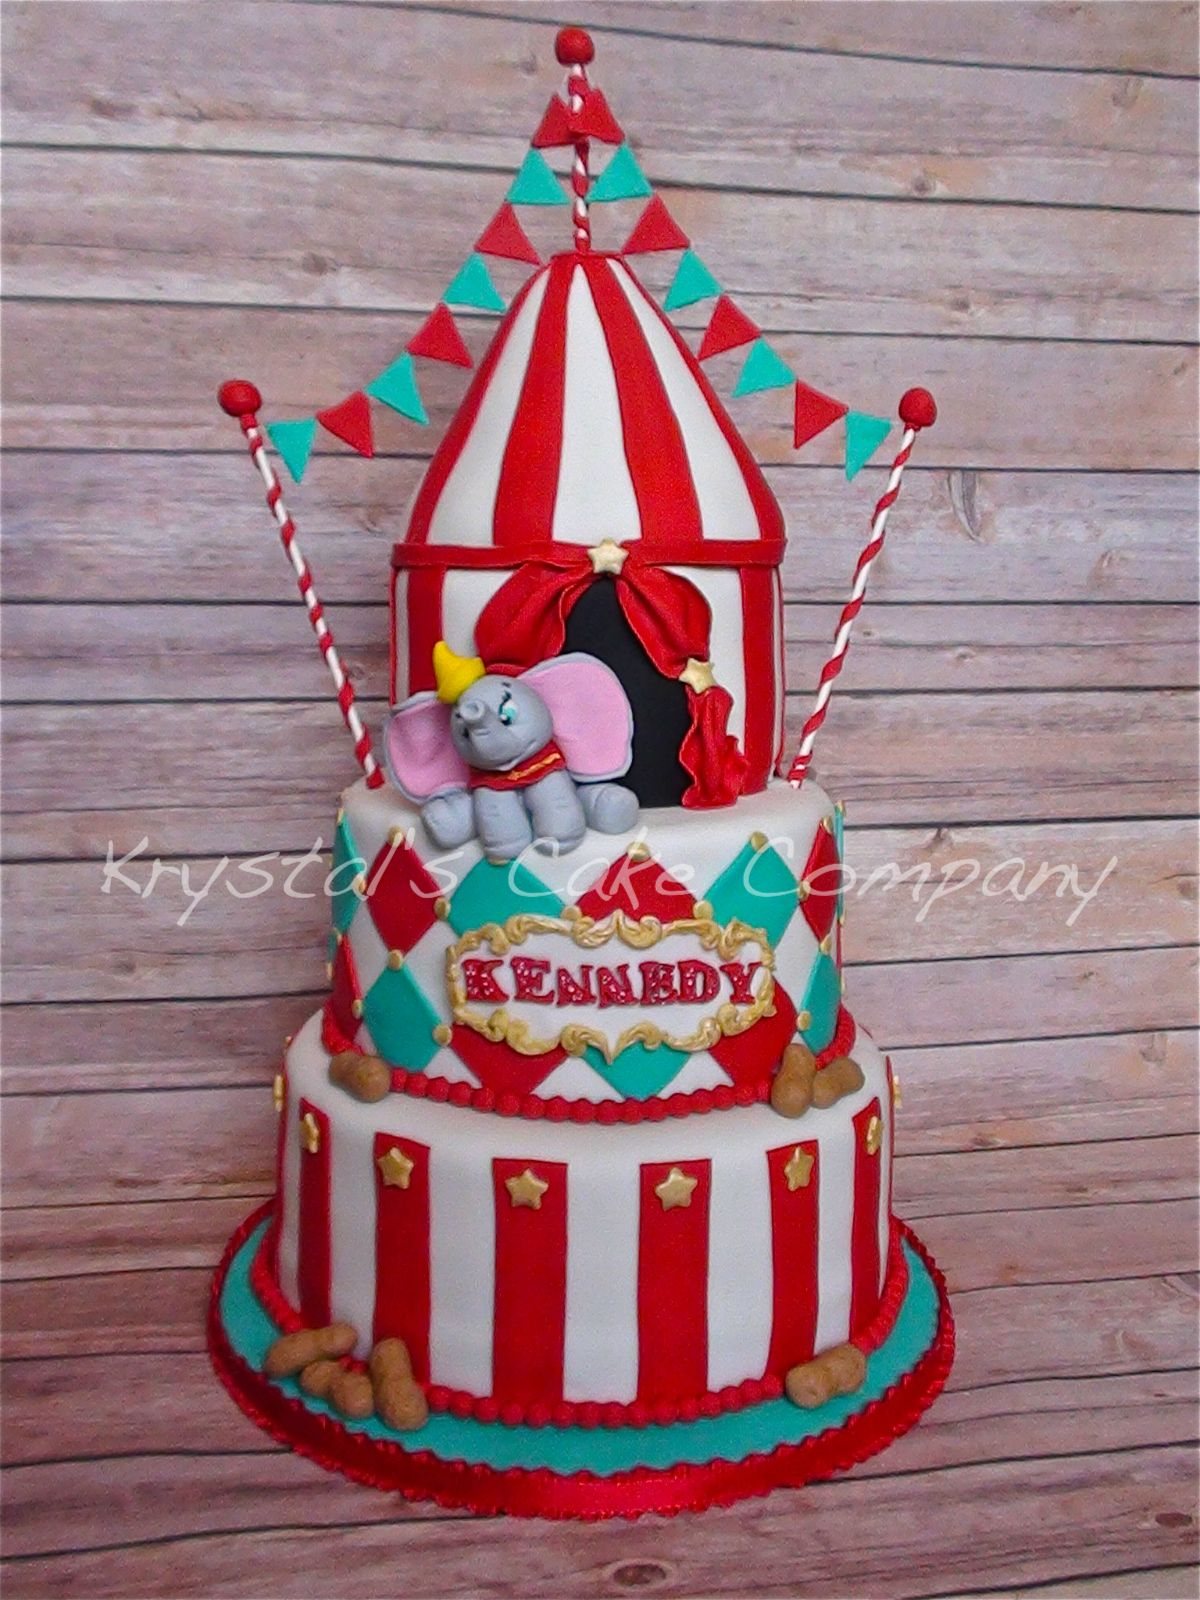 Groovy Circus Party Carnival Cakes Dumbo Birthday Party Birthday Cake Birthday Cards Printable Trancafe Filternl